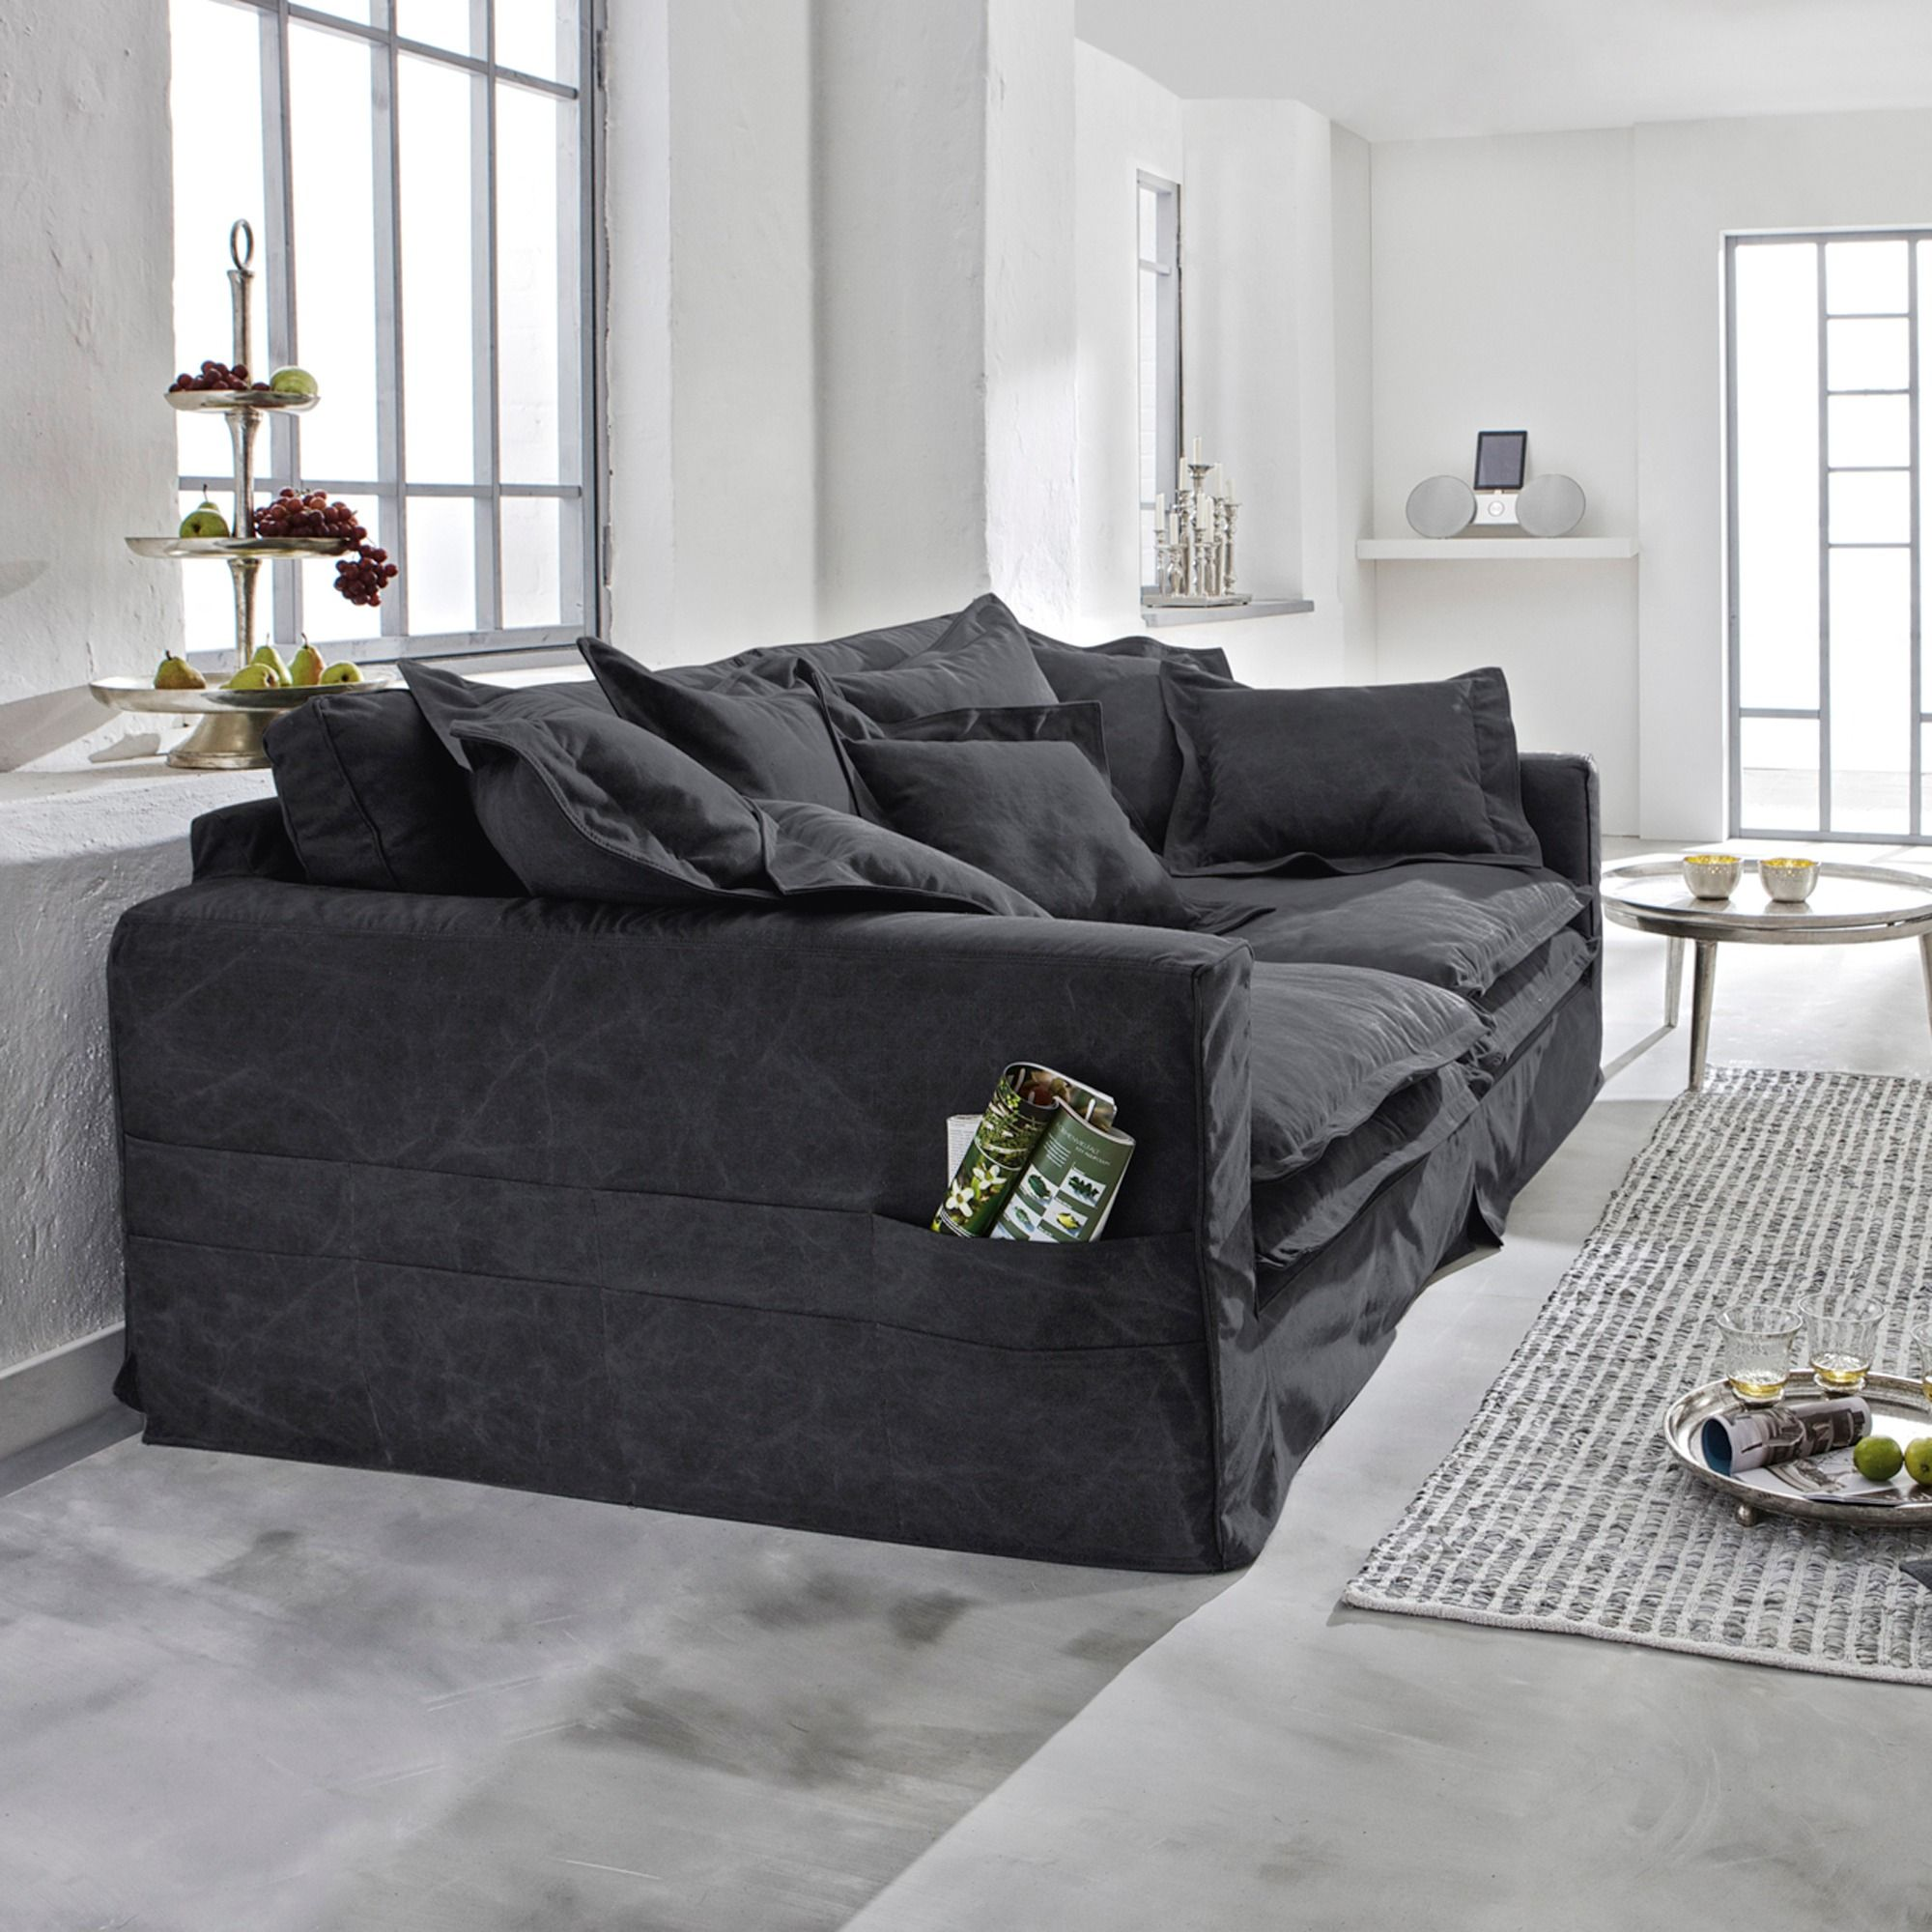 xxl sofa carcassonne online kaufen mirabeau livingroom. Black Bedroom Furniture Sets. Home Design Ideas